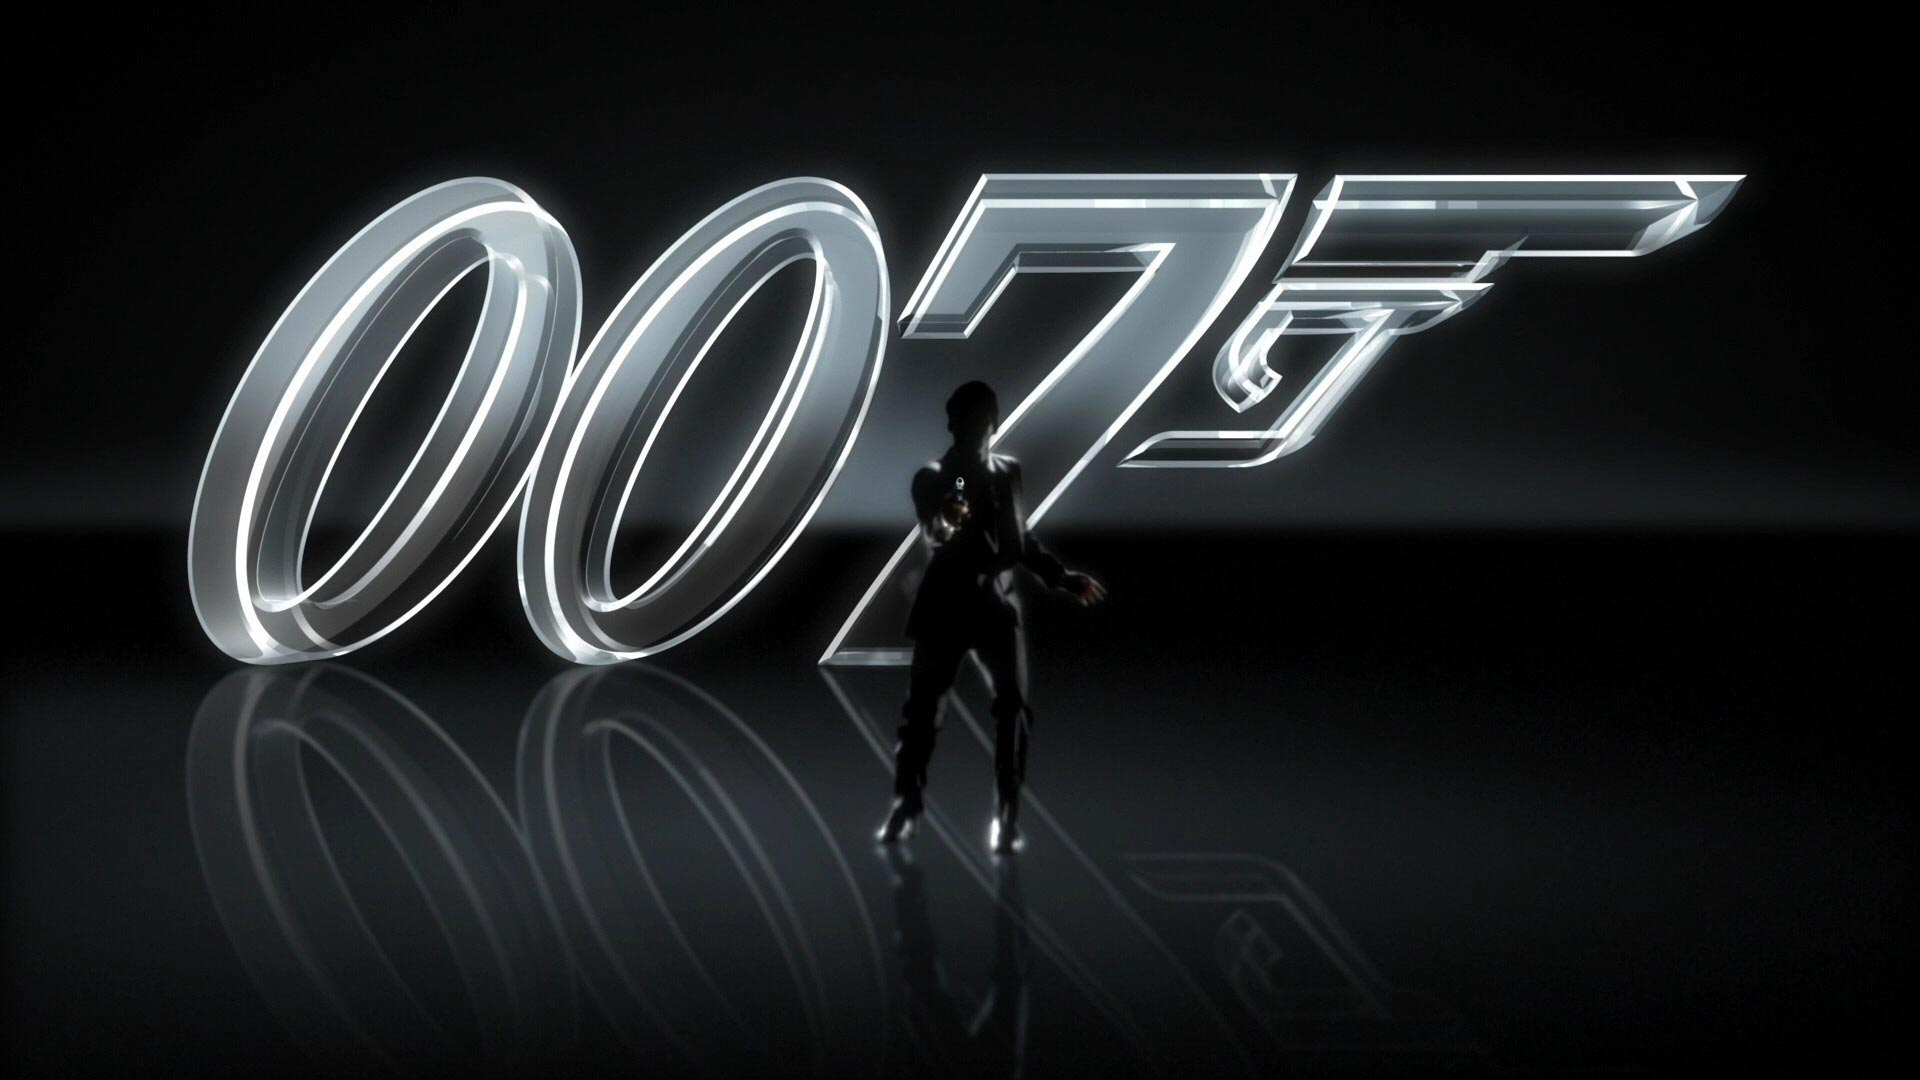 James Bond 007 Wallpaper 1920x1080